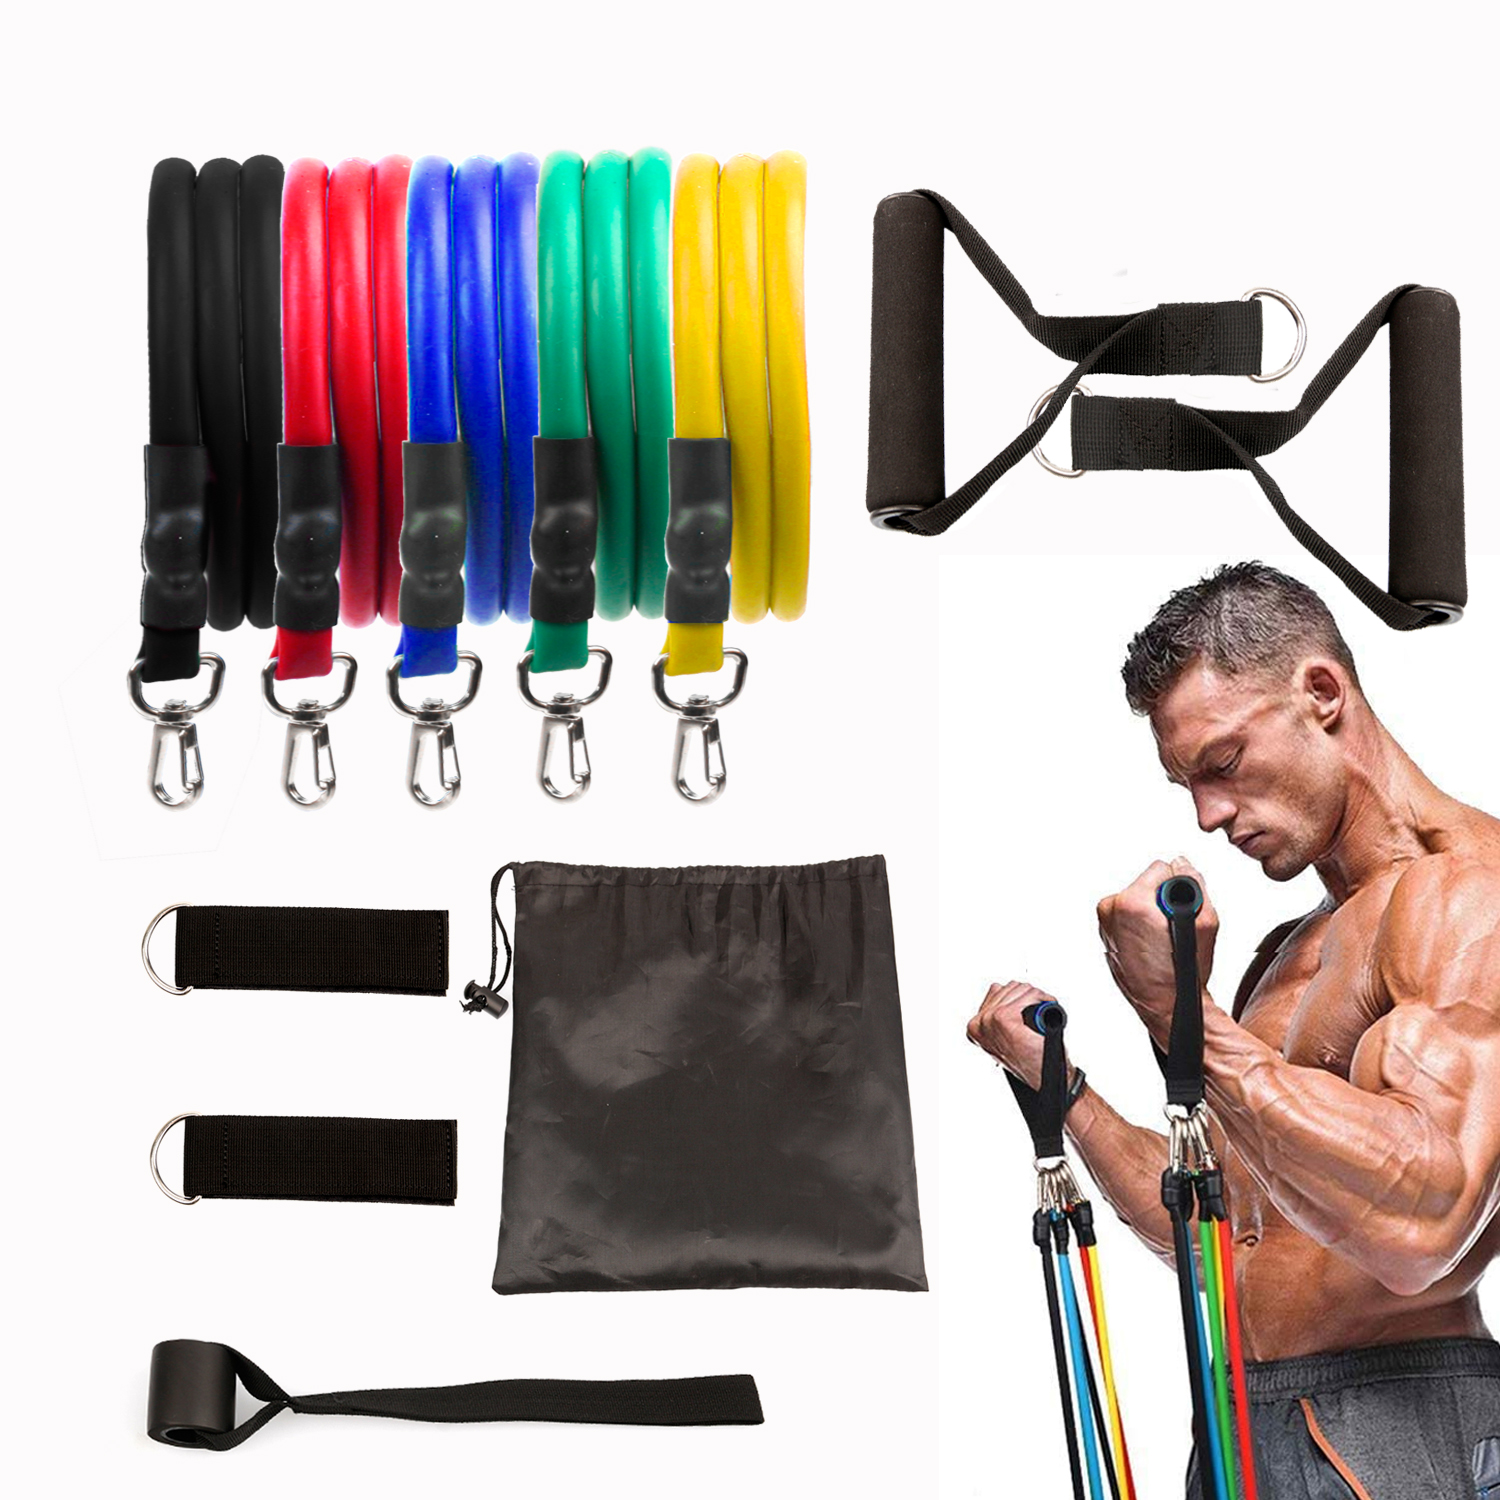 11pcs/set Trx Band Resistance Bands Fitness Set Sport Elastic Rubber Band Workout Pedal Excerciser Body Training Workout Yoga